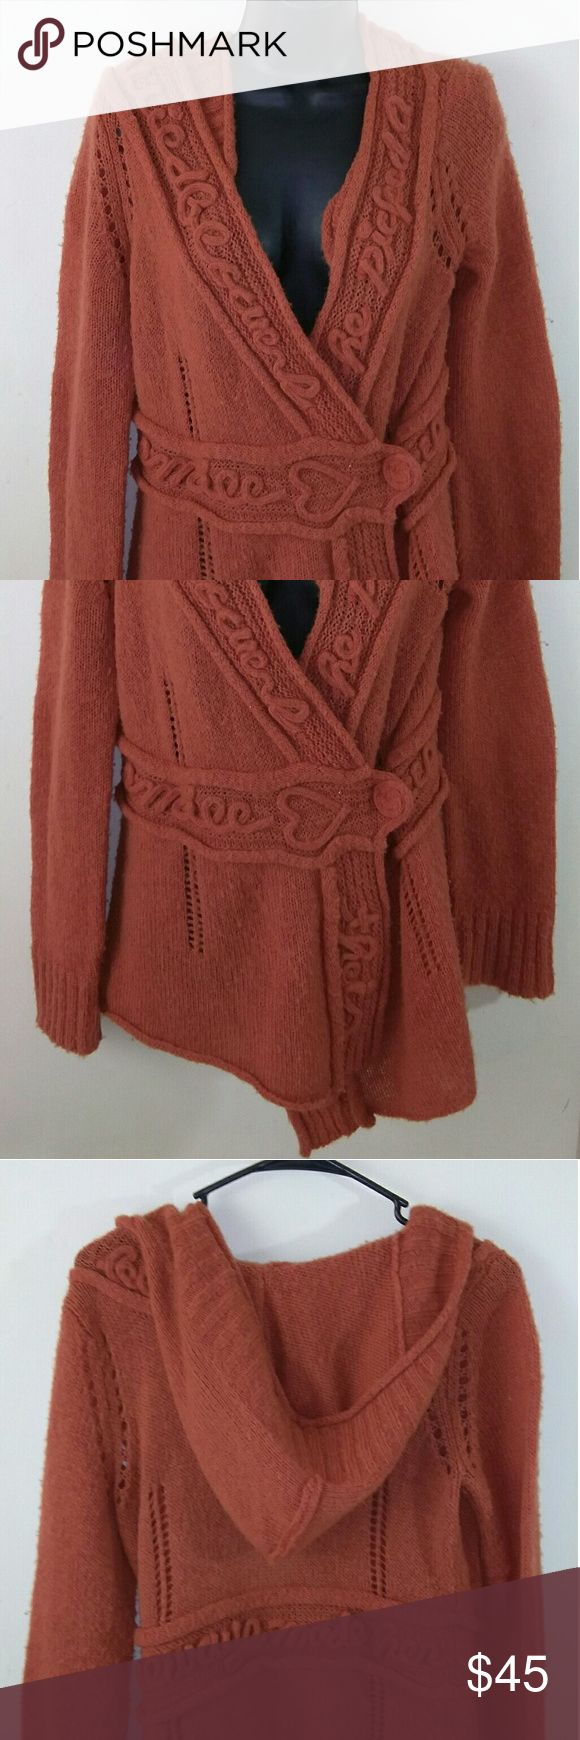 "Sleeping on snow by Anthropologie hoodie Anthropologie sleeping on snow burnt orange women's hooded sweater with beautiful embroidery in good preowned condition Armpit to armpit 19"" Length 29"" Sleeve 26"" Thanks for stopping by Anthropologie Sweaters V-Necks"